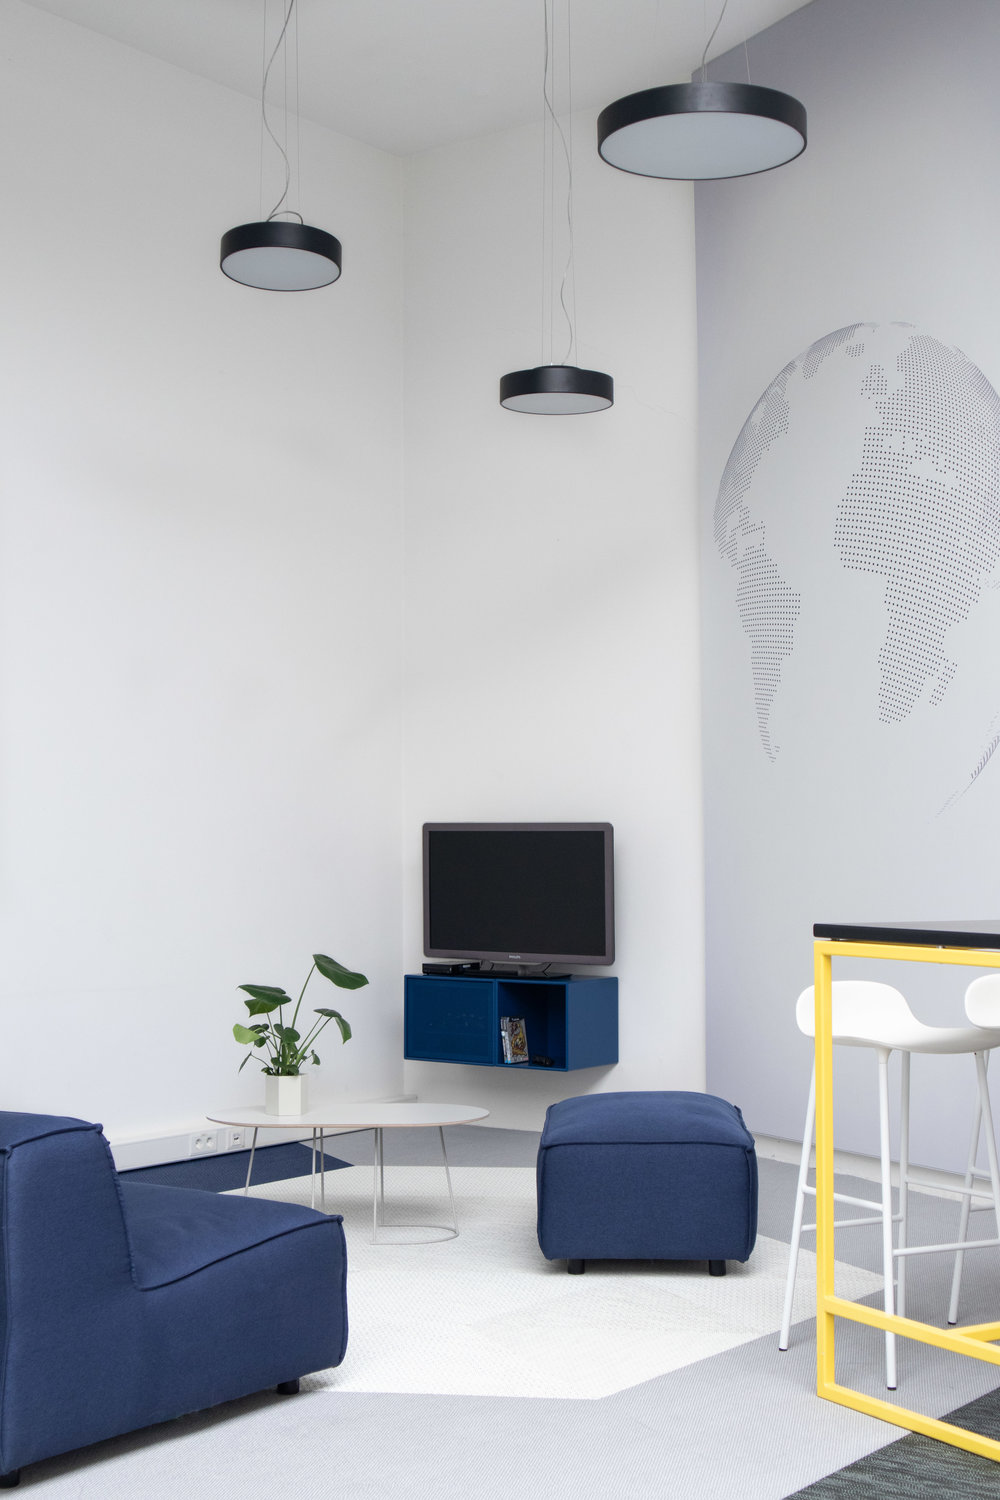 Lounge space, interior design project for Kors IT headquarters in Eindhoven 4.jpg